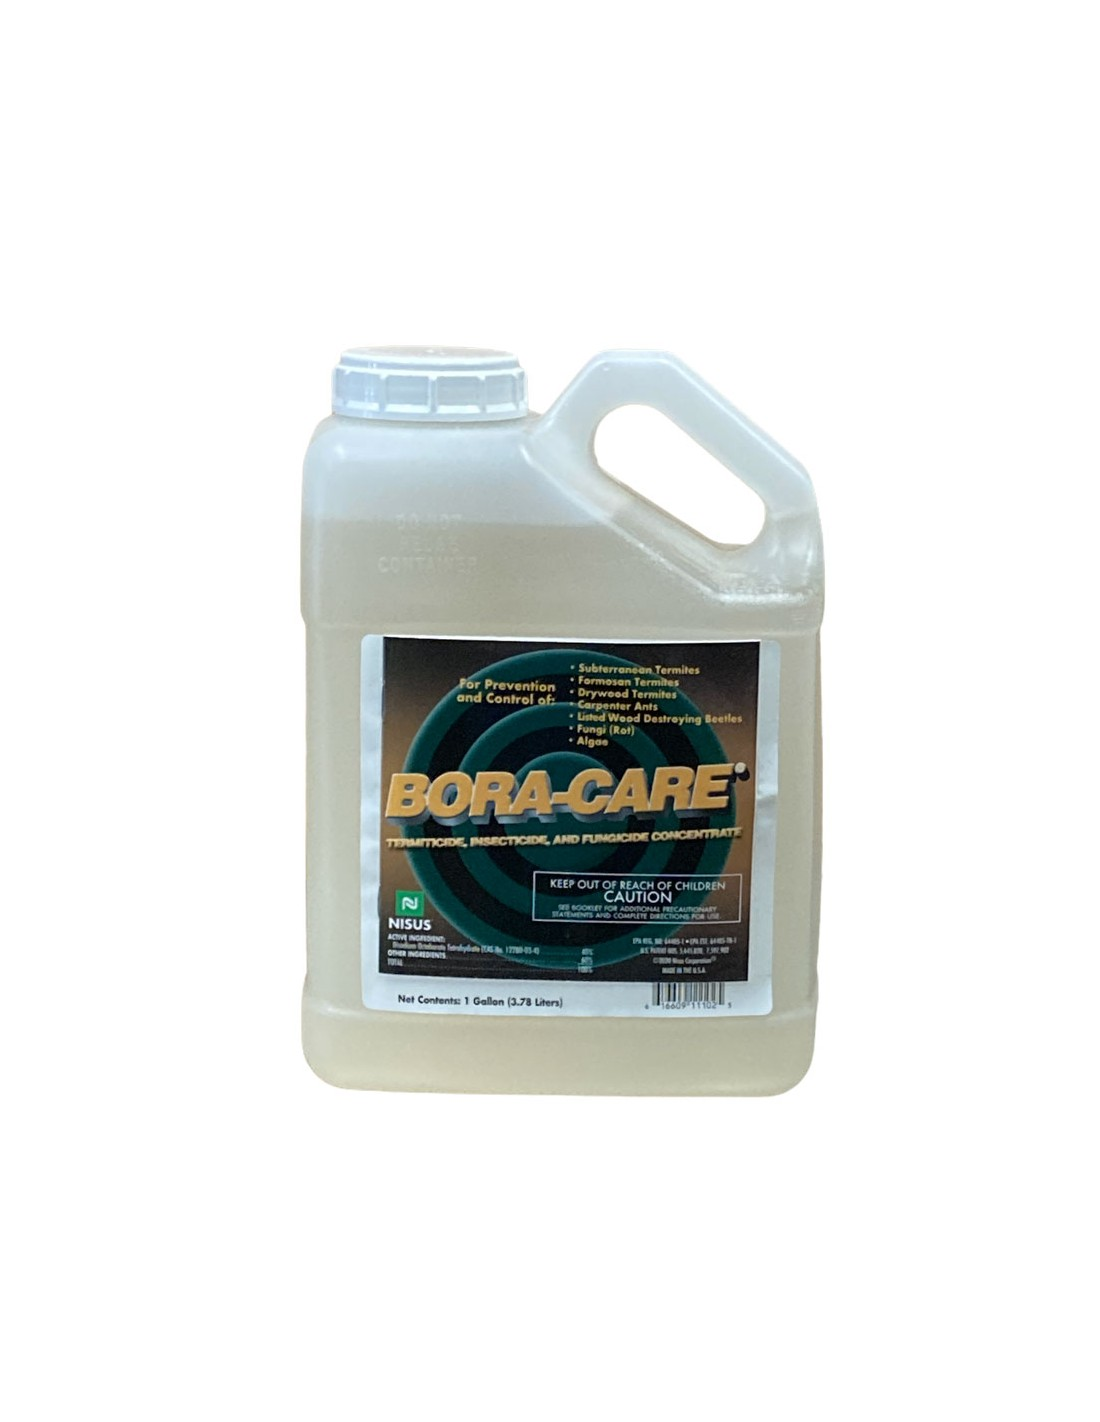 can you apply this yourself? What type of sprayer is needed? Problem is in the house, where do dead termites go?